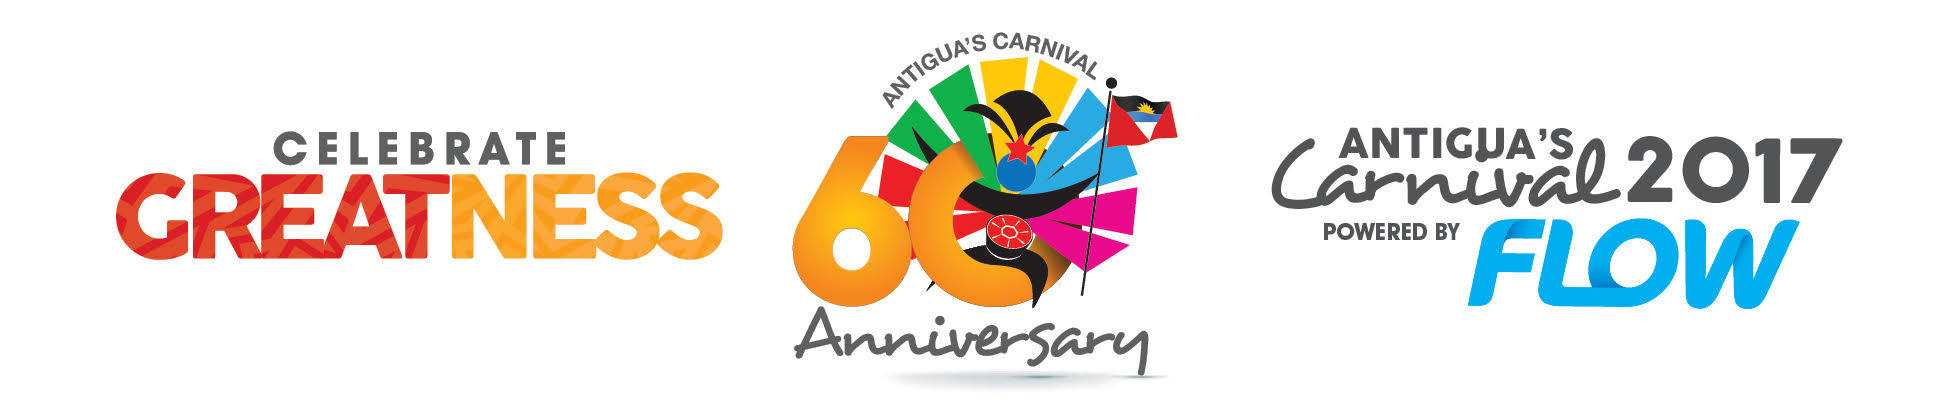 Antigua Carnival 2017 - Celebrating Greatness